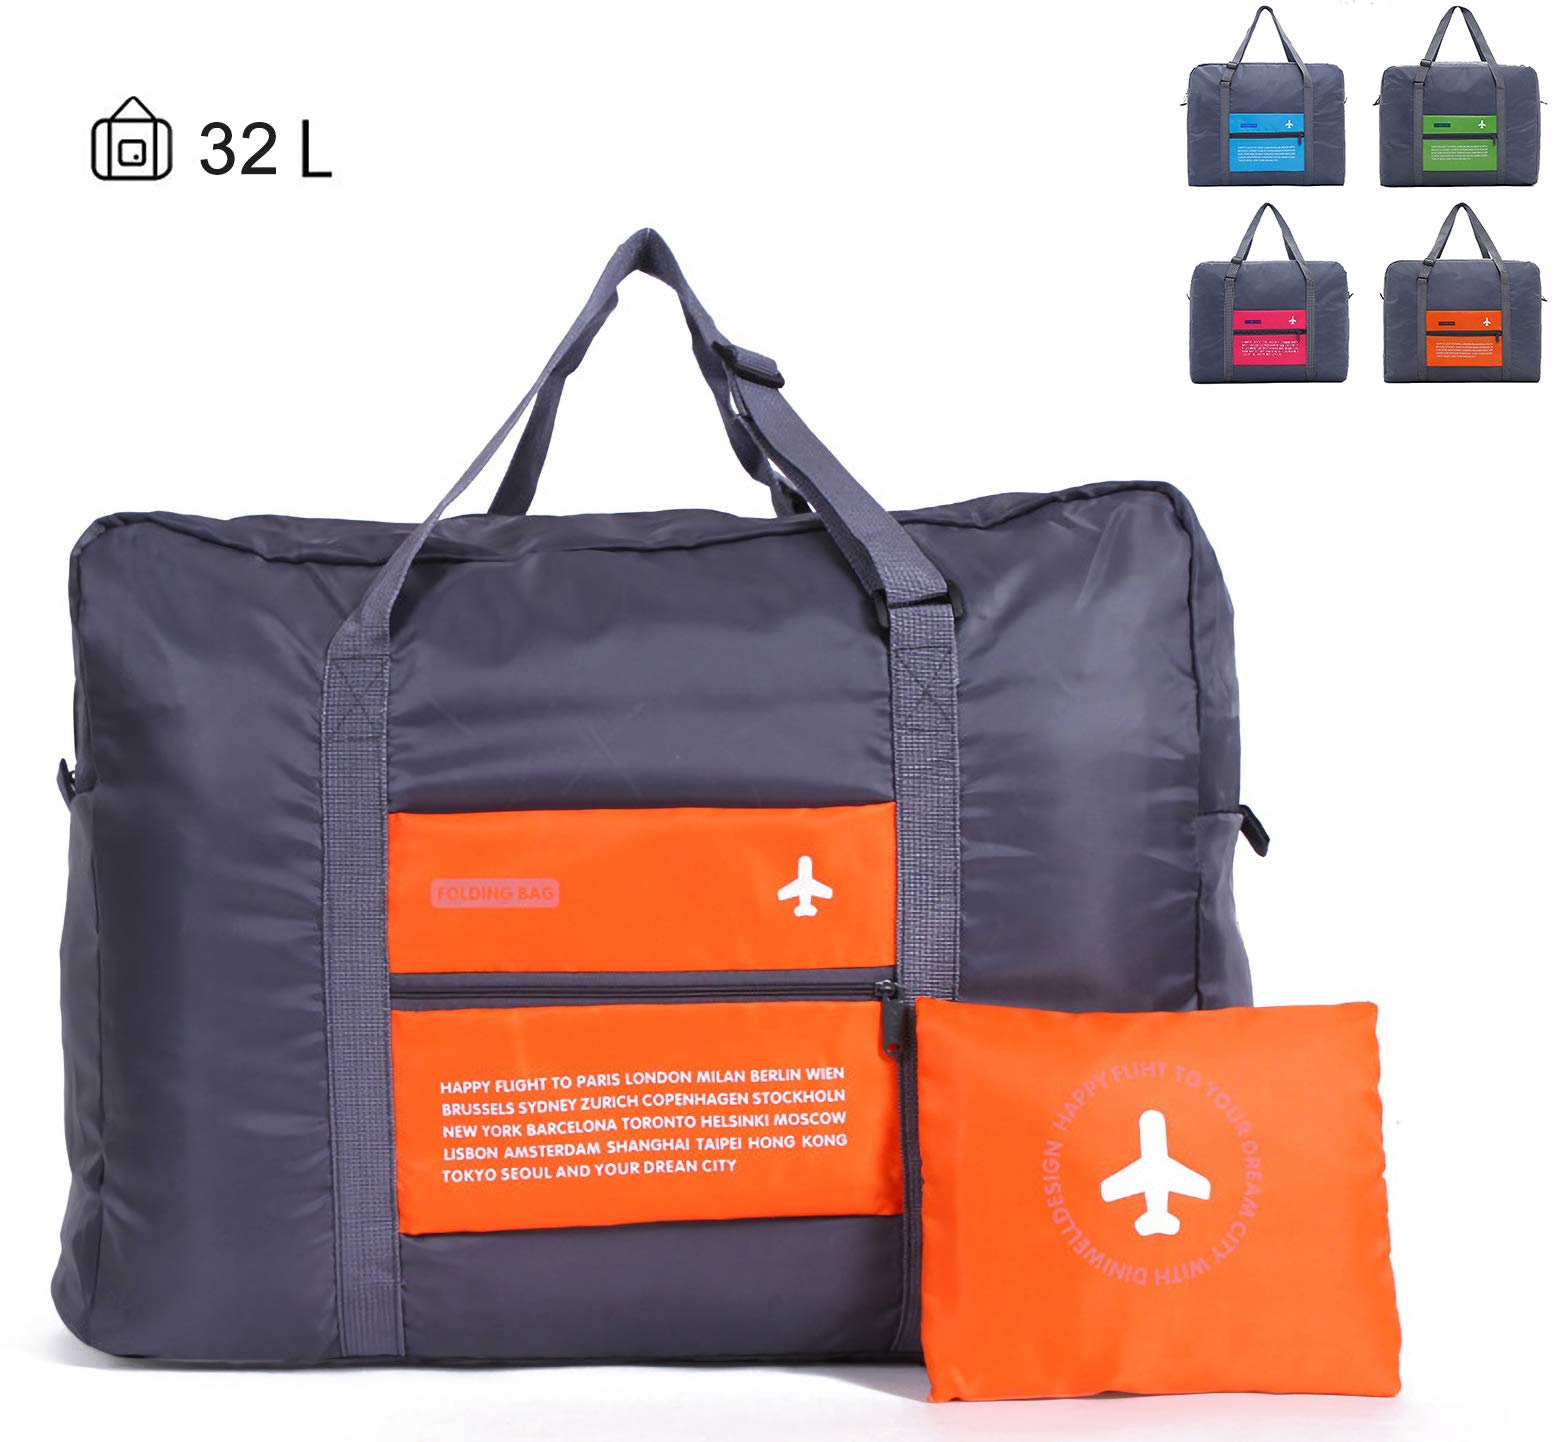 CHYOUL Travel Foldable Packable Lightweight High Capacity Luggage Duffle Tote Bag Orange